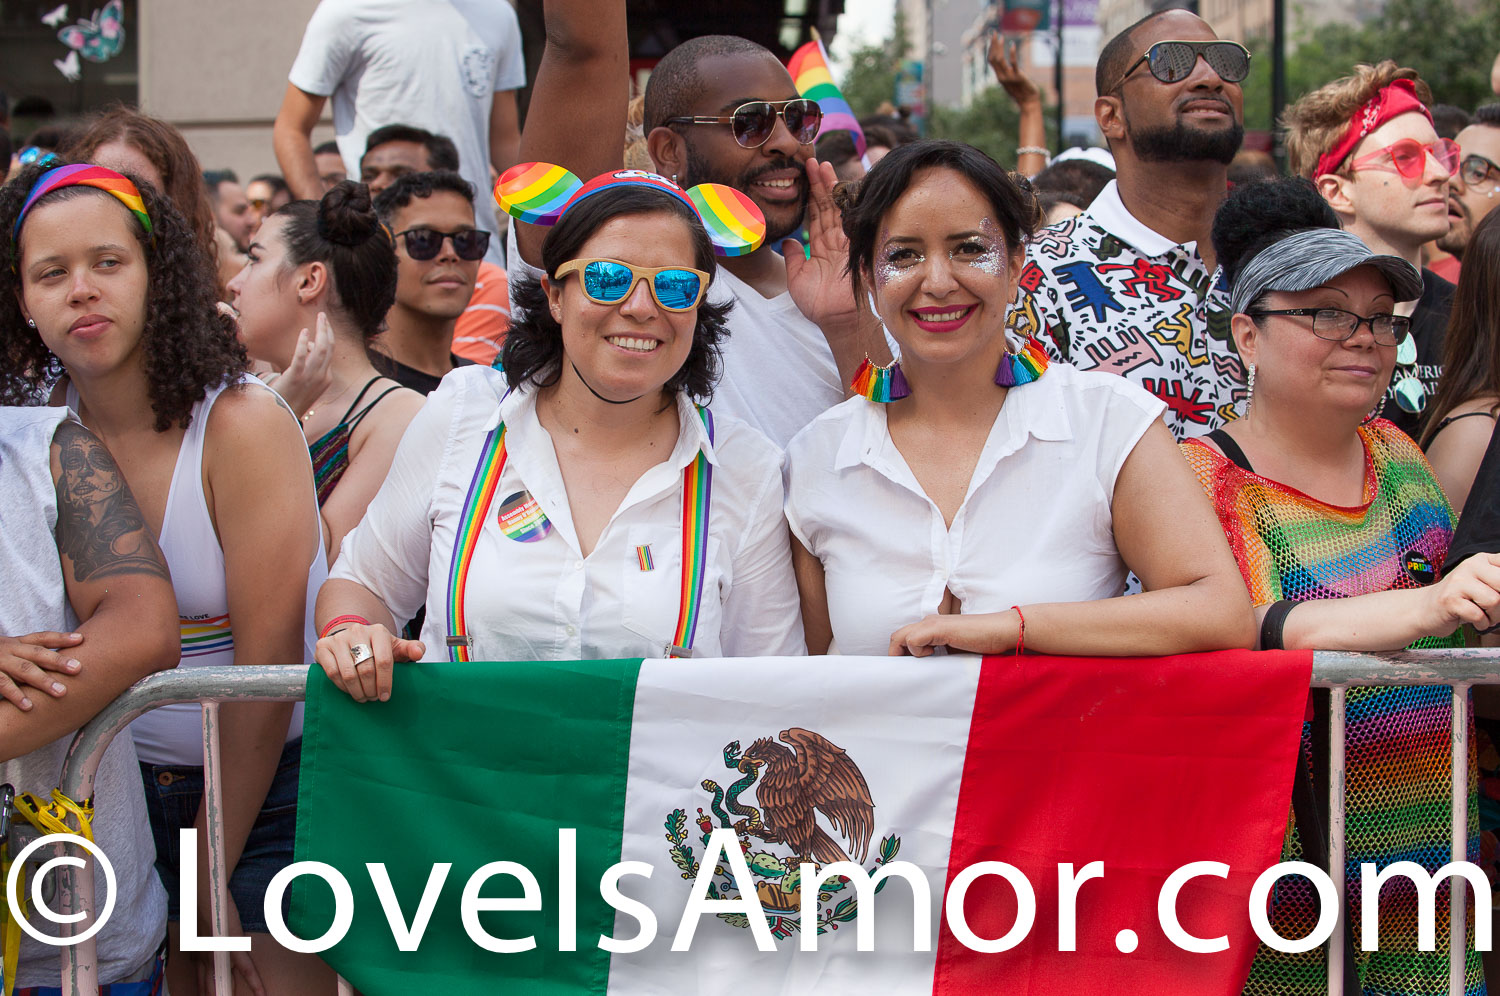 Sunday, June 30th, 2019. New York City - Mexican women with the Mexican flag at the NYC Pride March. The 50th anniversary of the Stonewall Rebellion was on Friday, June 28th, 2019. People from around the world came to New York City to celebrate.